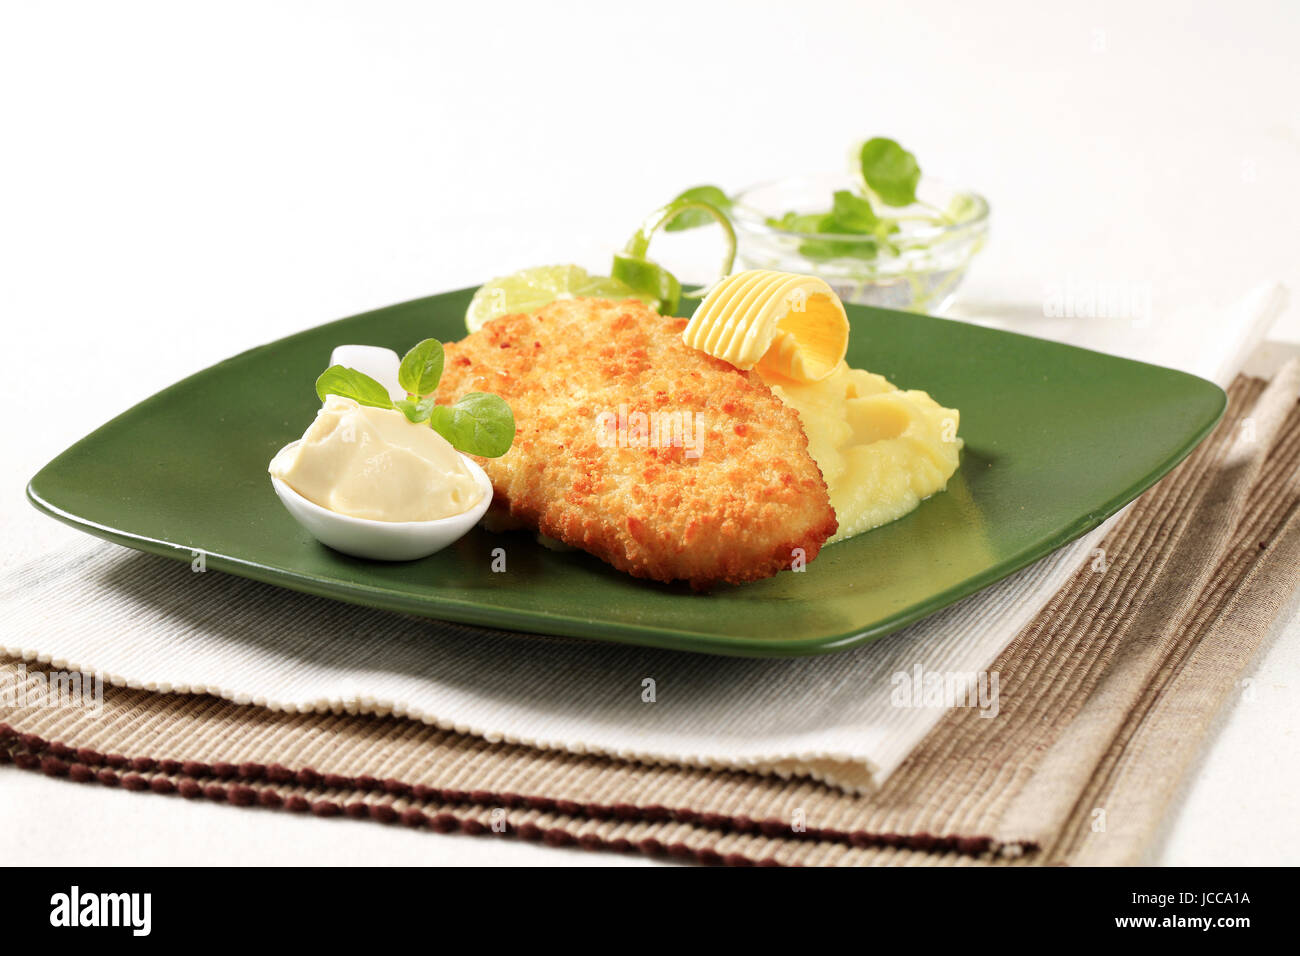 Fried breaded fish served with mashed potato Stock Photo